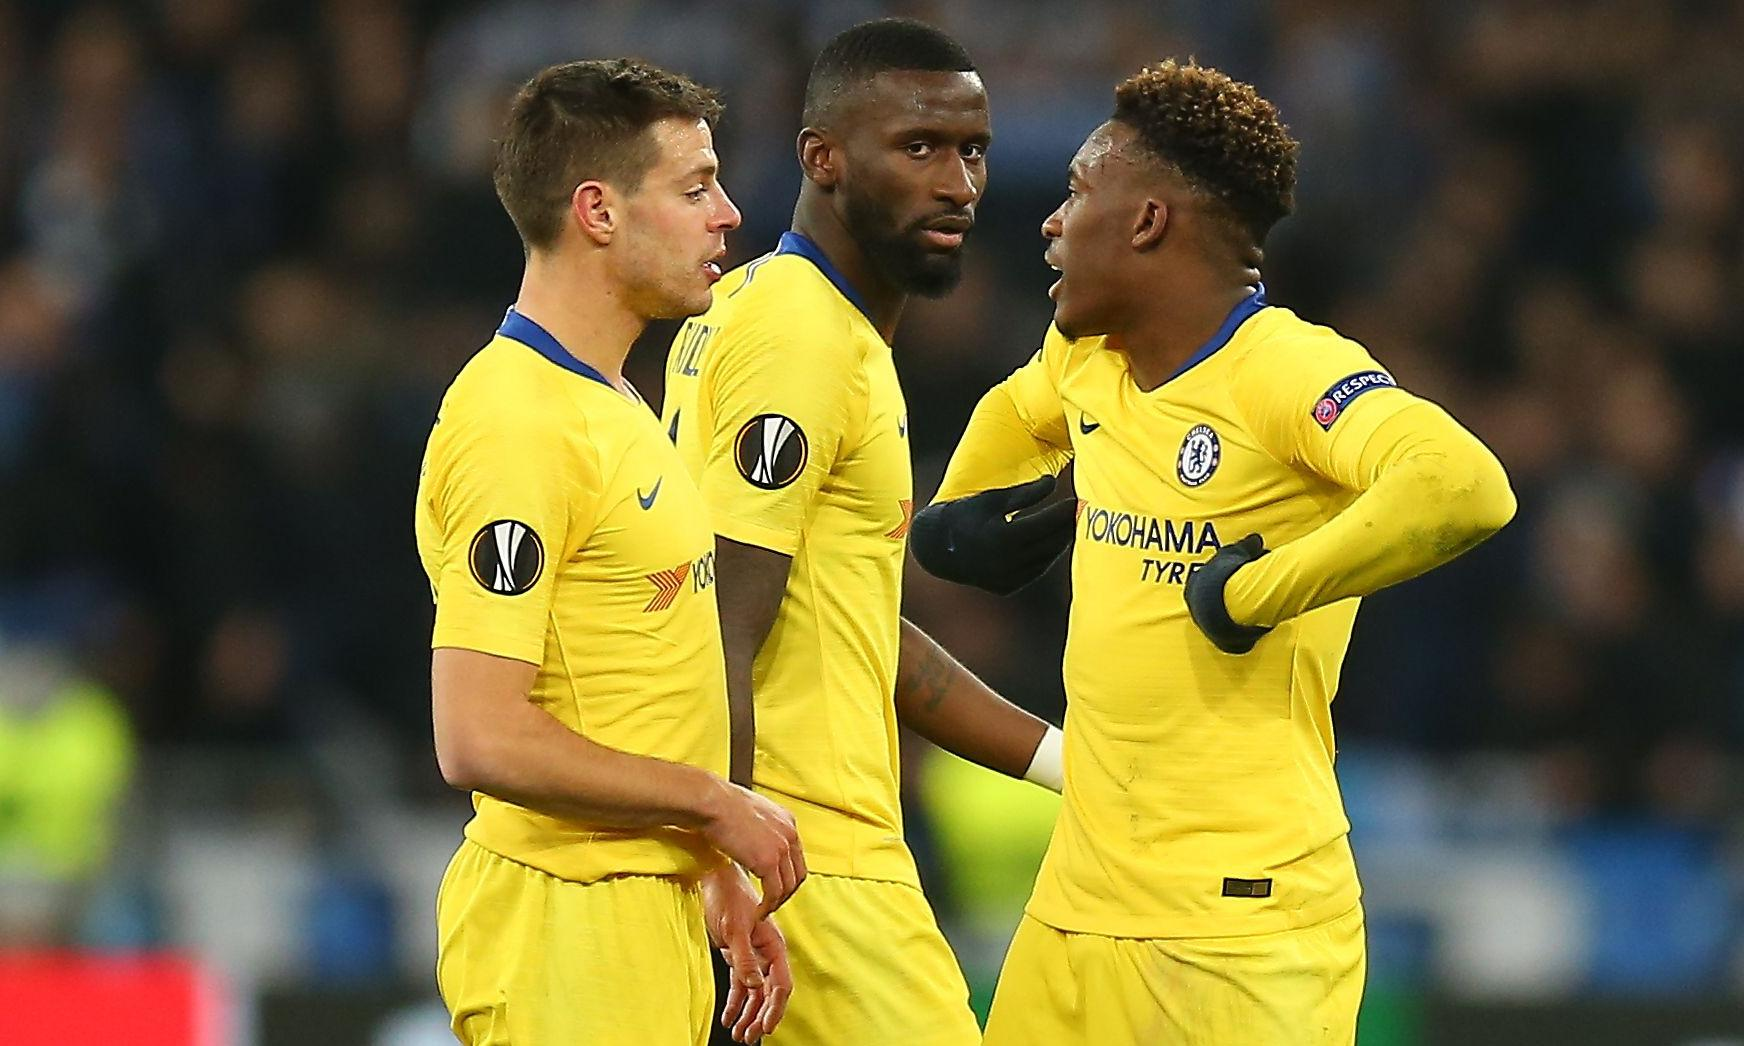 Chelsea complain to Uefa over racist abuse of Hudson-Odoi in Kyiv